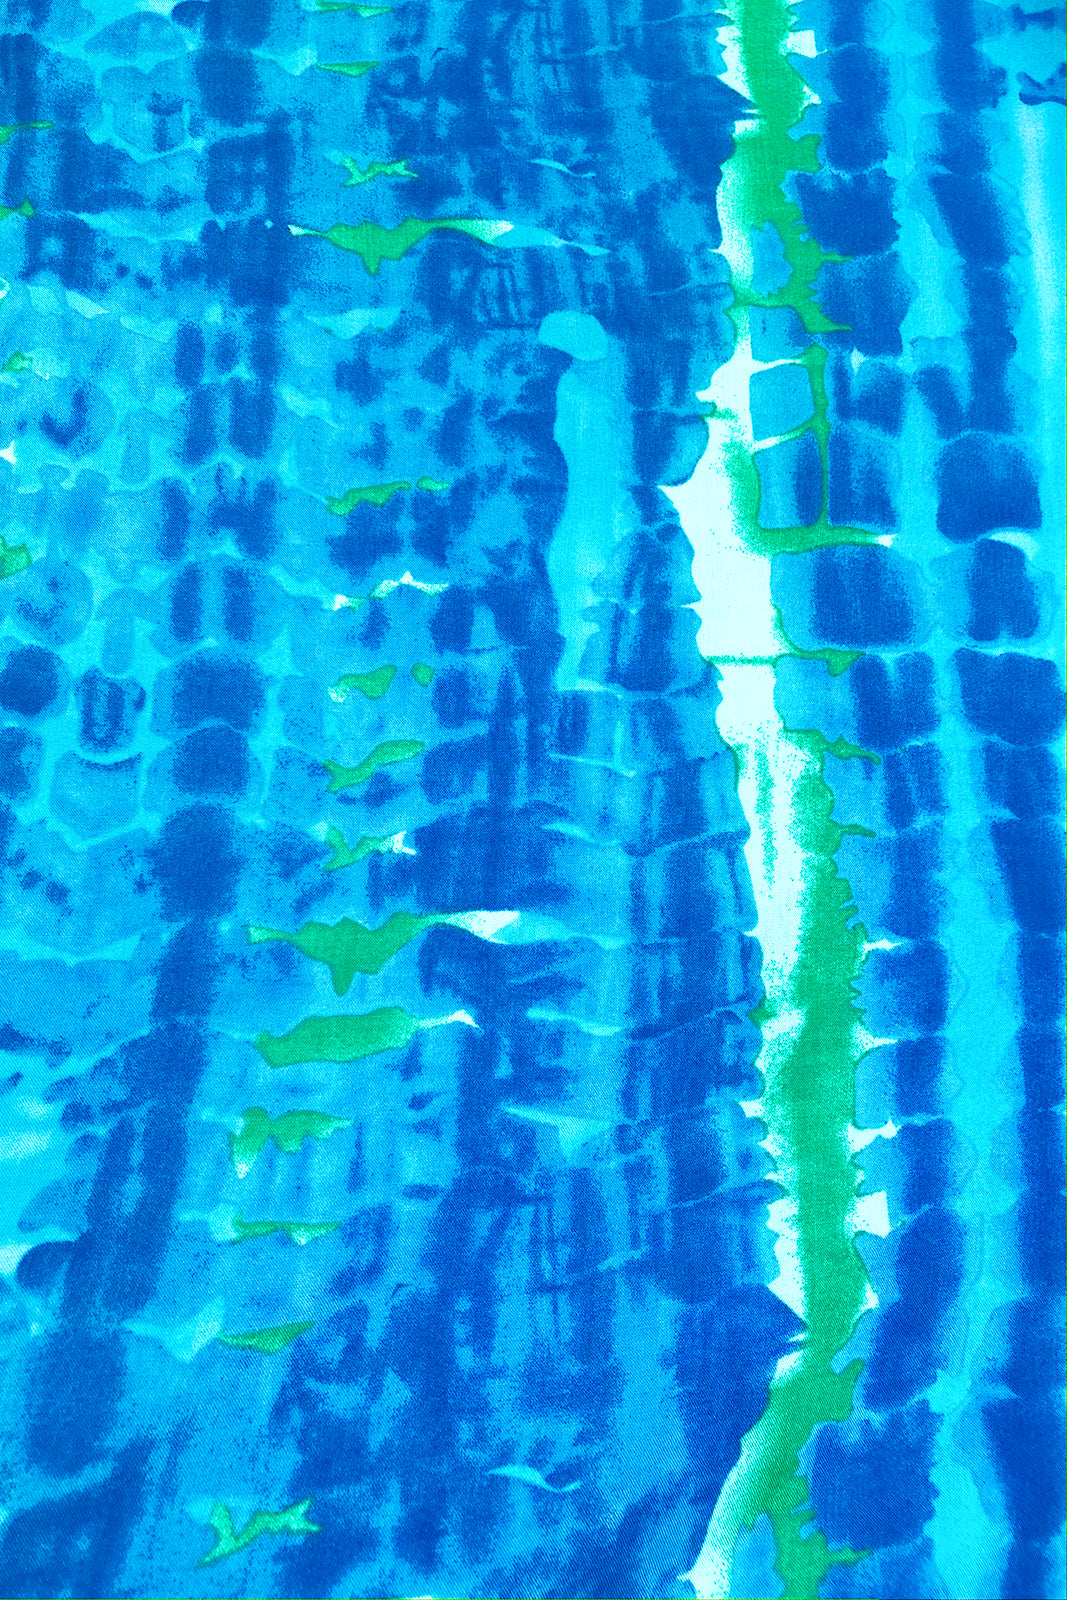 Fabric Swatch o f Ruby Tuesday Bolo Blue Dress featuring  100% rayon in blue and green tie dye print.